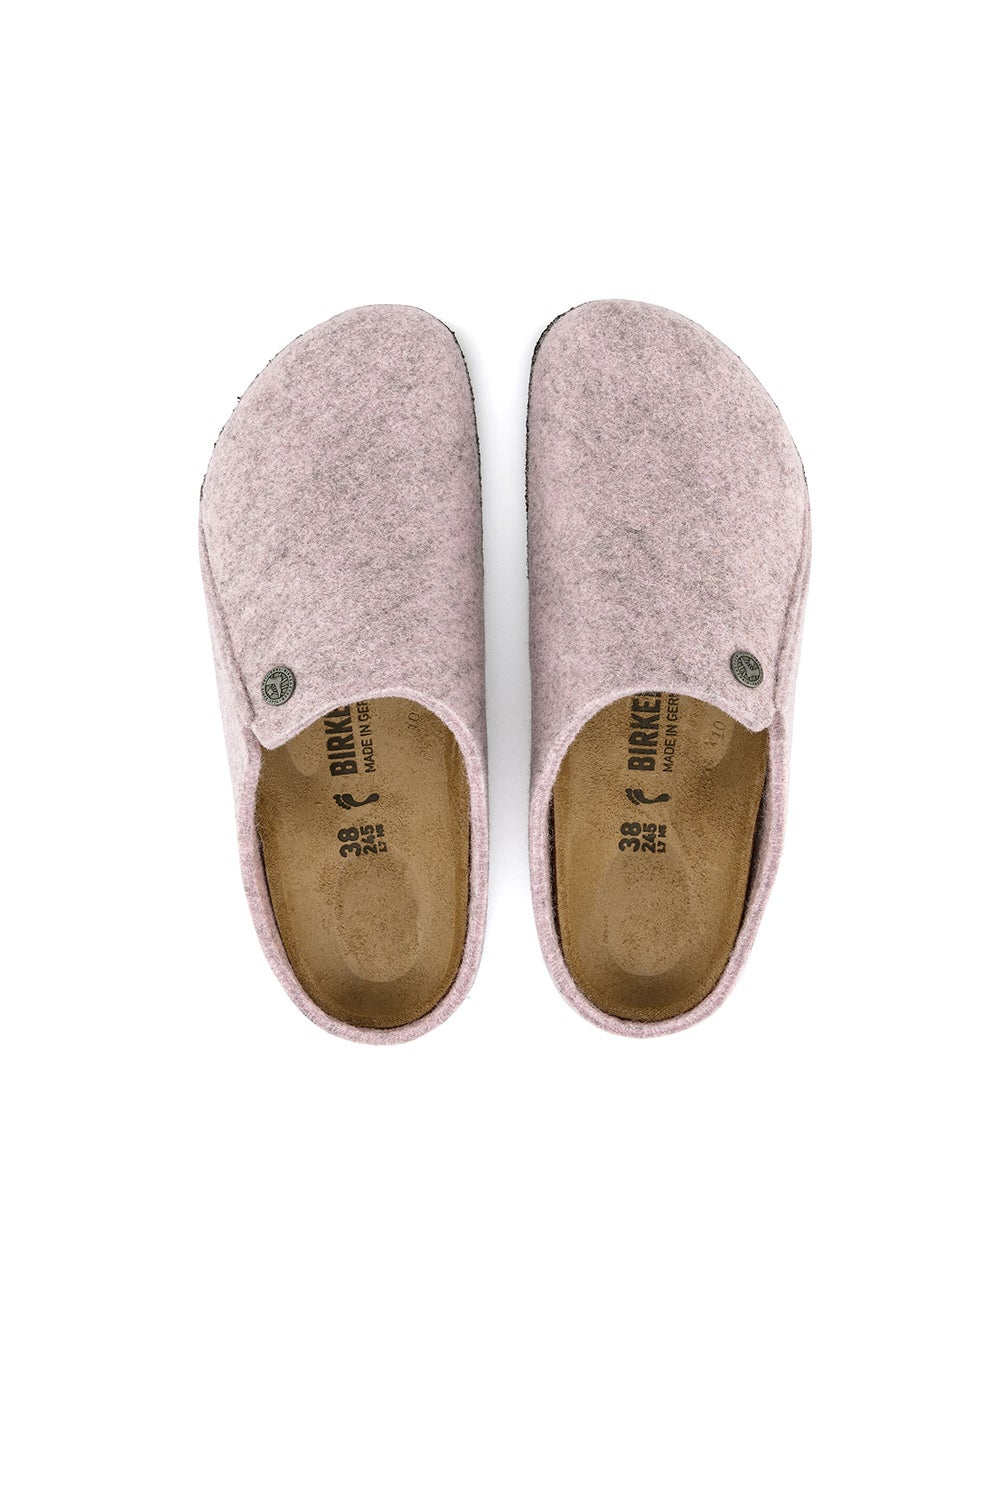 Birkenstock Zermatt Narrow Fit Soft Pink